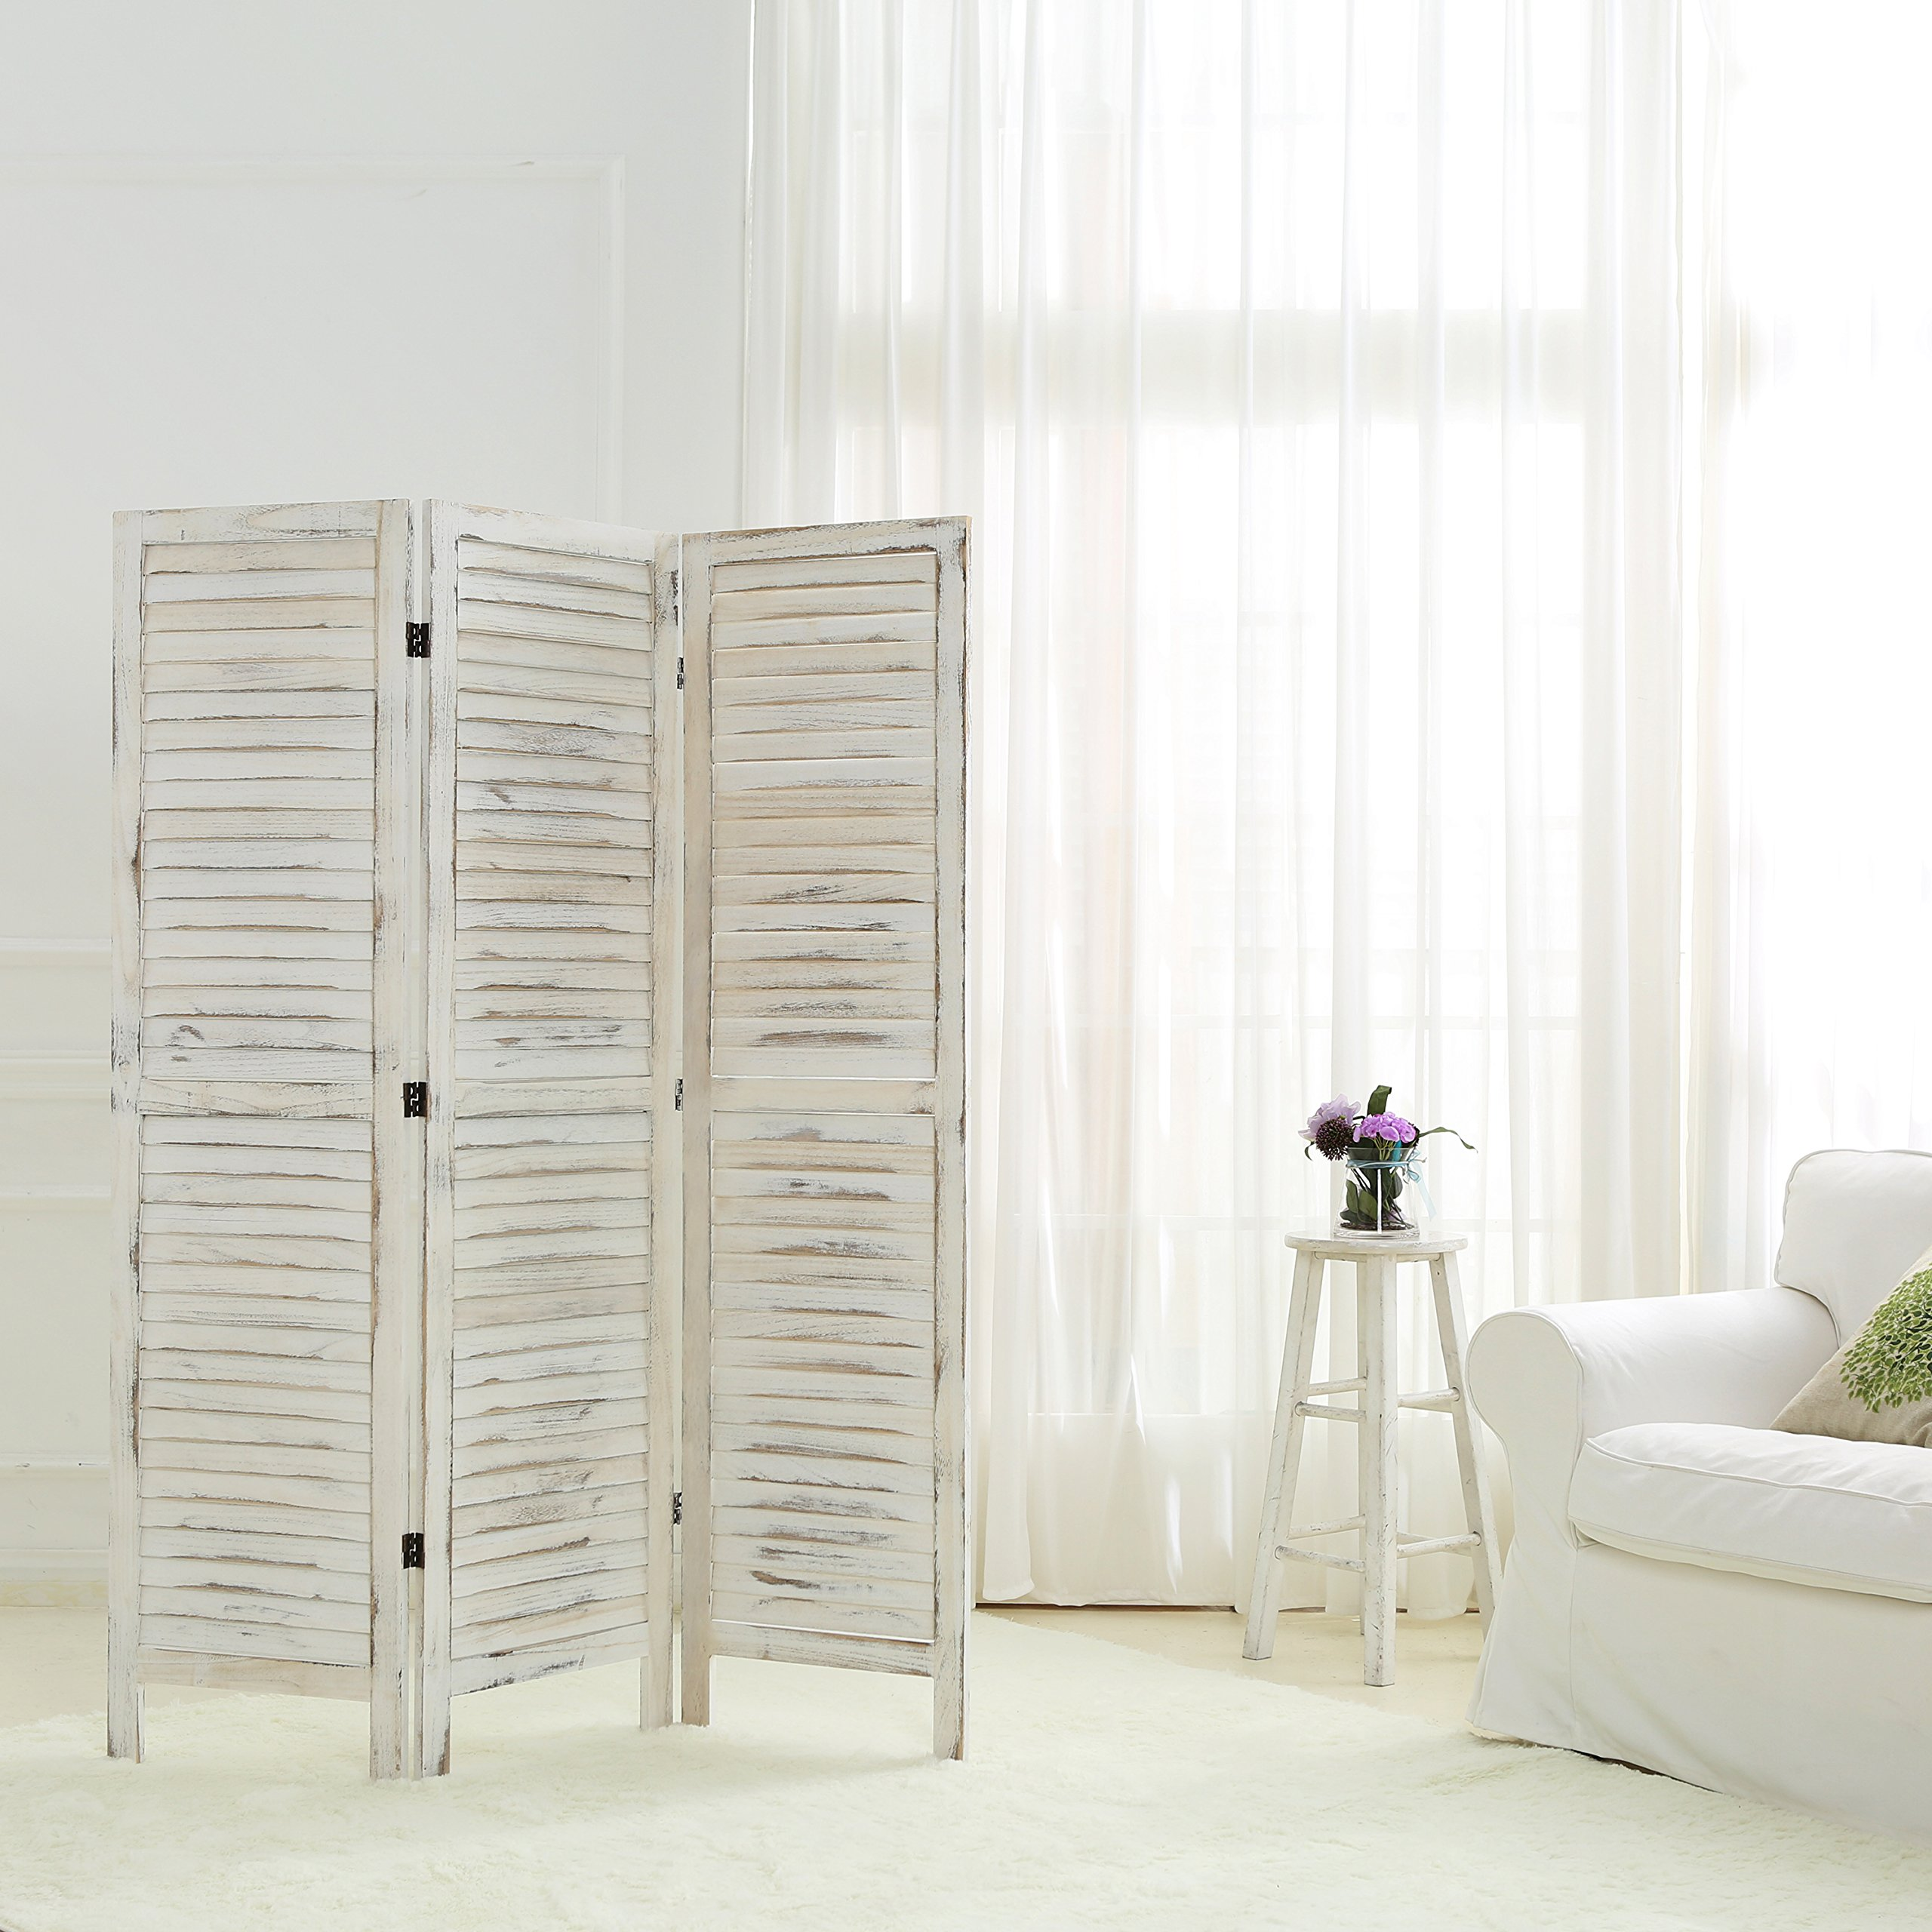 MyGift Whitewashed Wood 3 Panel Screen, Folding Louvered Room Divider by MyGift (Image #2)